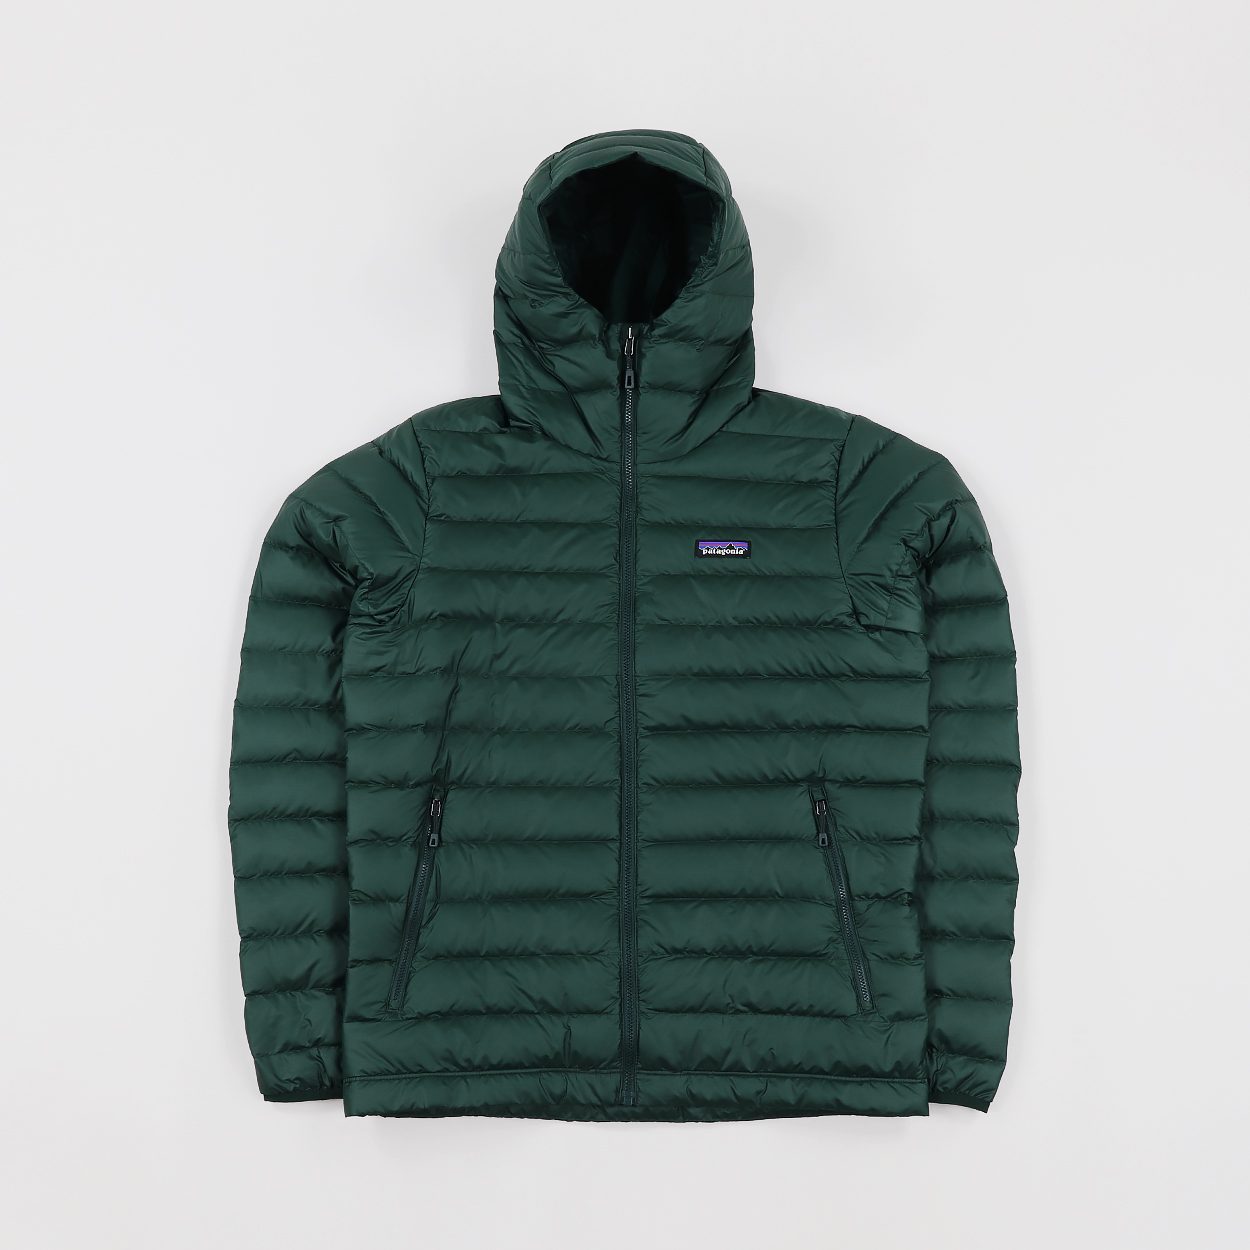 8088e8495a8 Patagonia Mens Down Filled Sweater Hoody Hooded Jacket Green £170.00